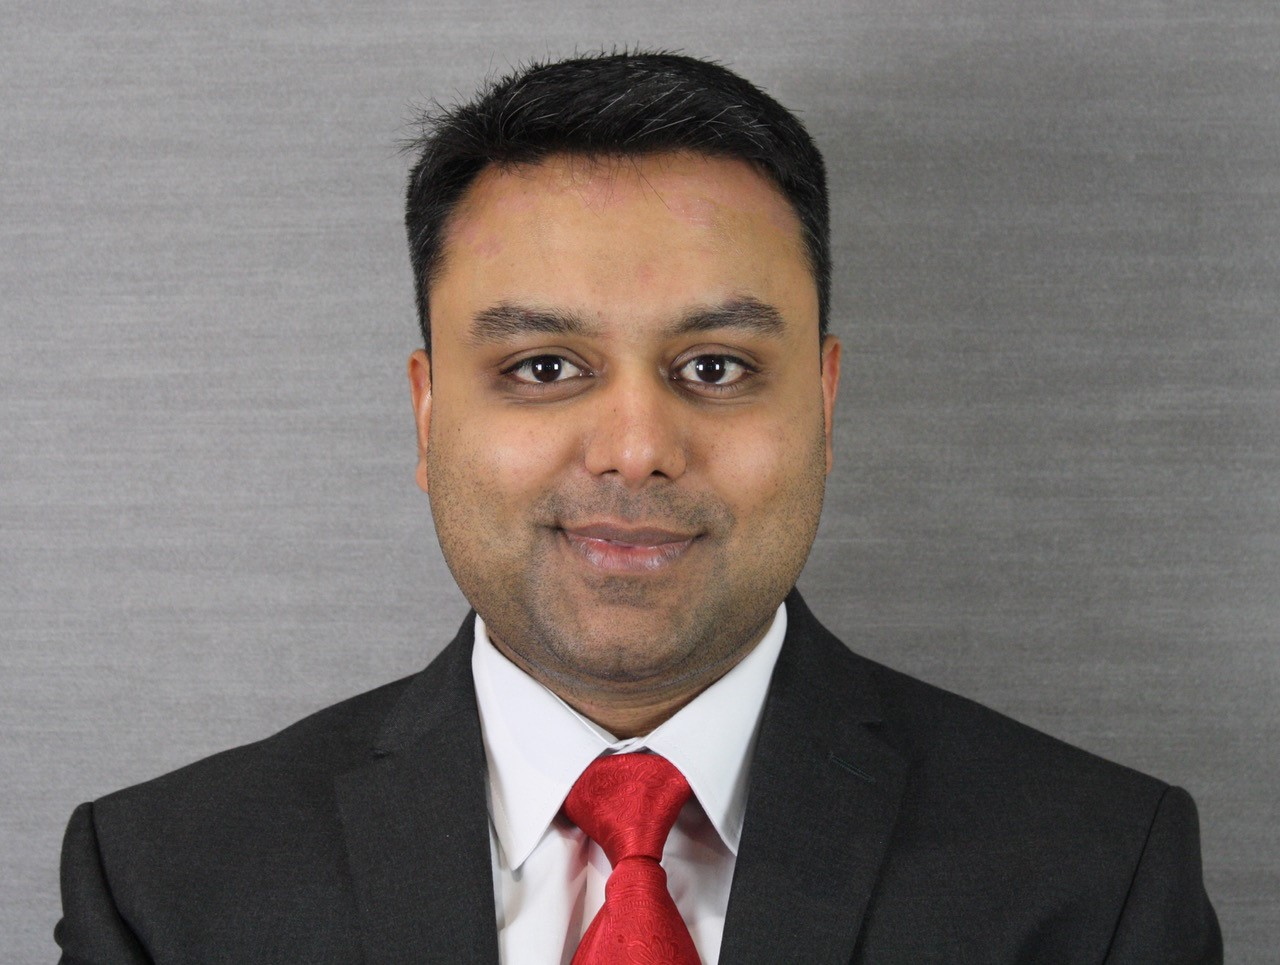 Vishal Pandya, operations manager, Society of Mortgage Professionals